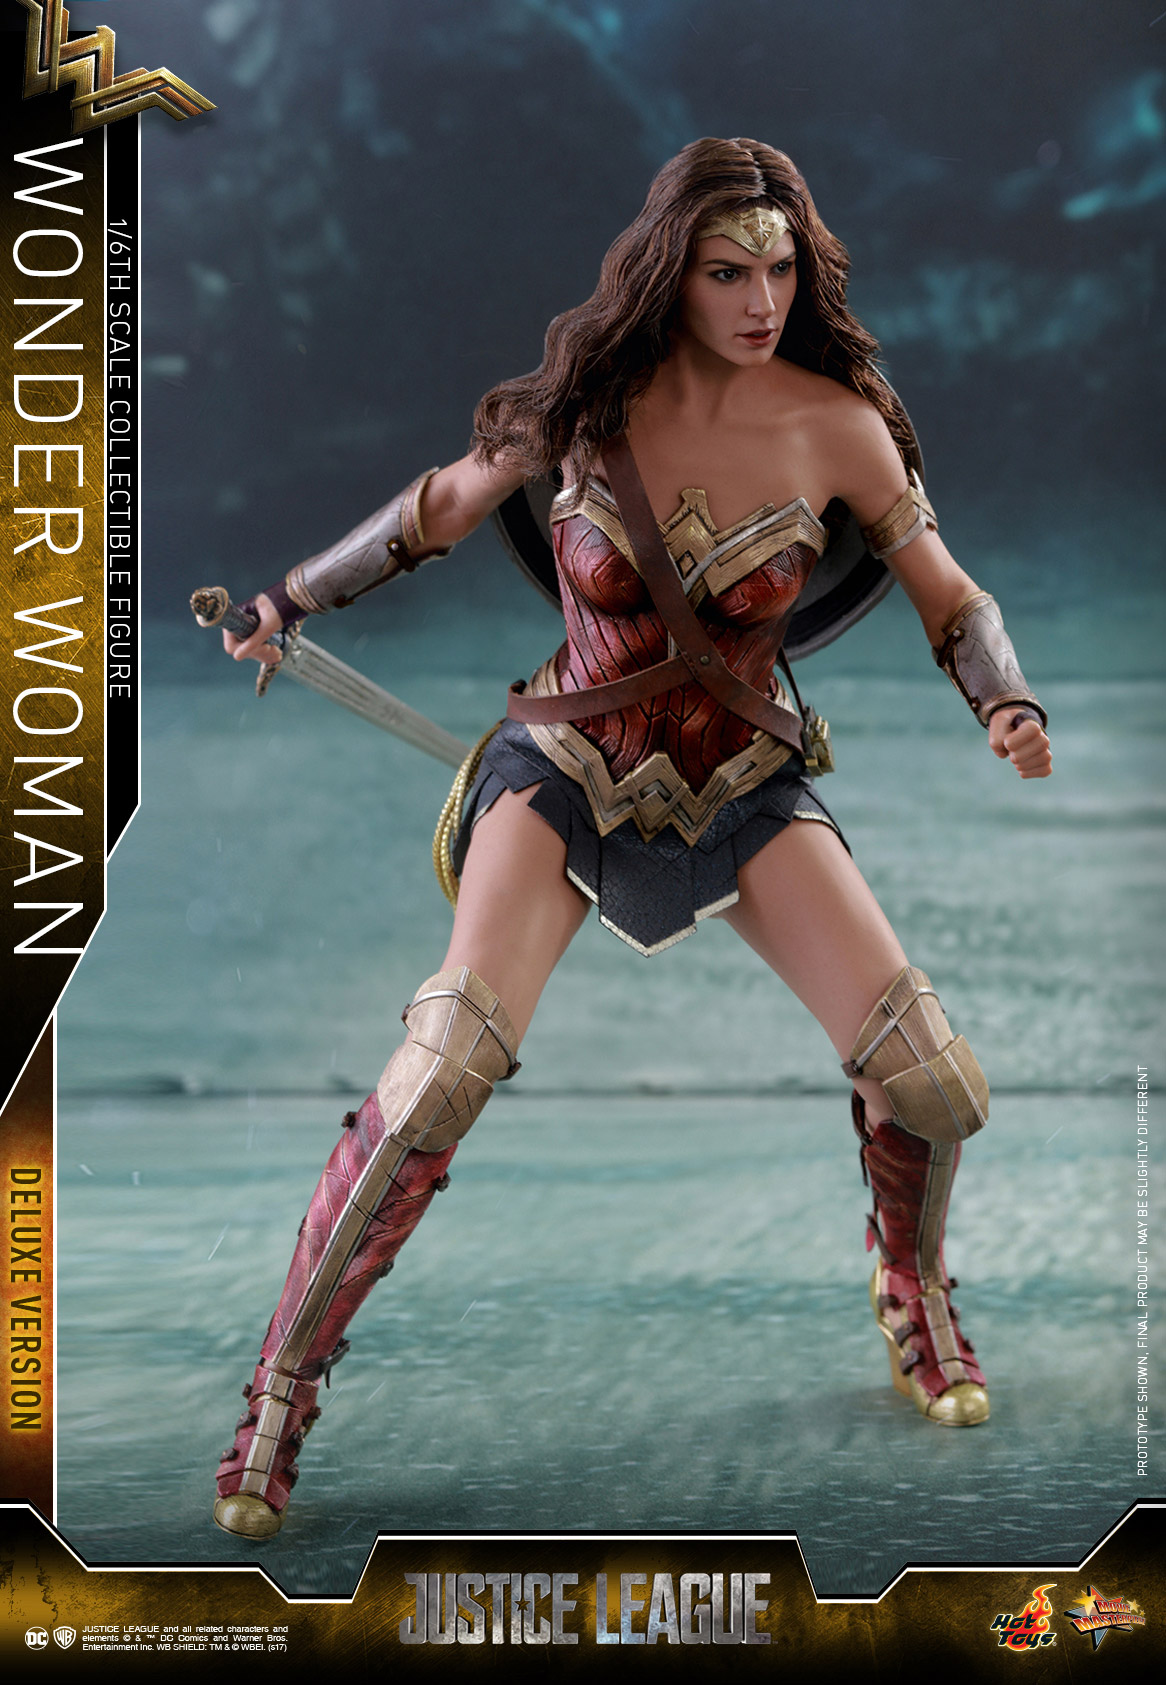 Hot-Toys-Justice-League-Wonder-Woman-collectible-figure-Deluxe_PR-3.jpg